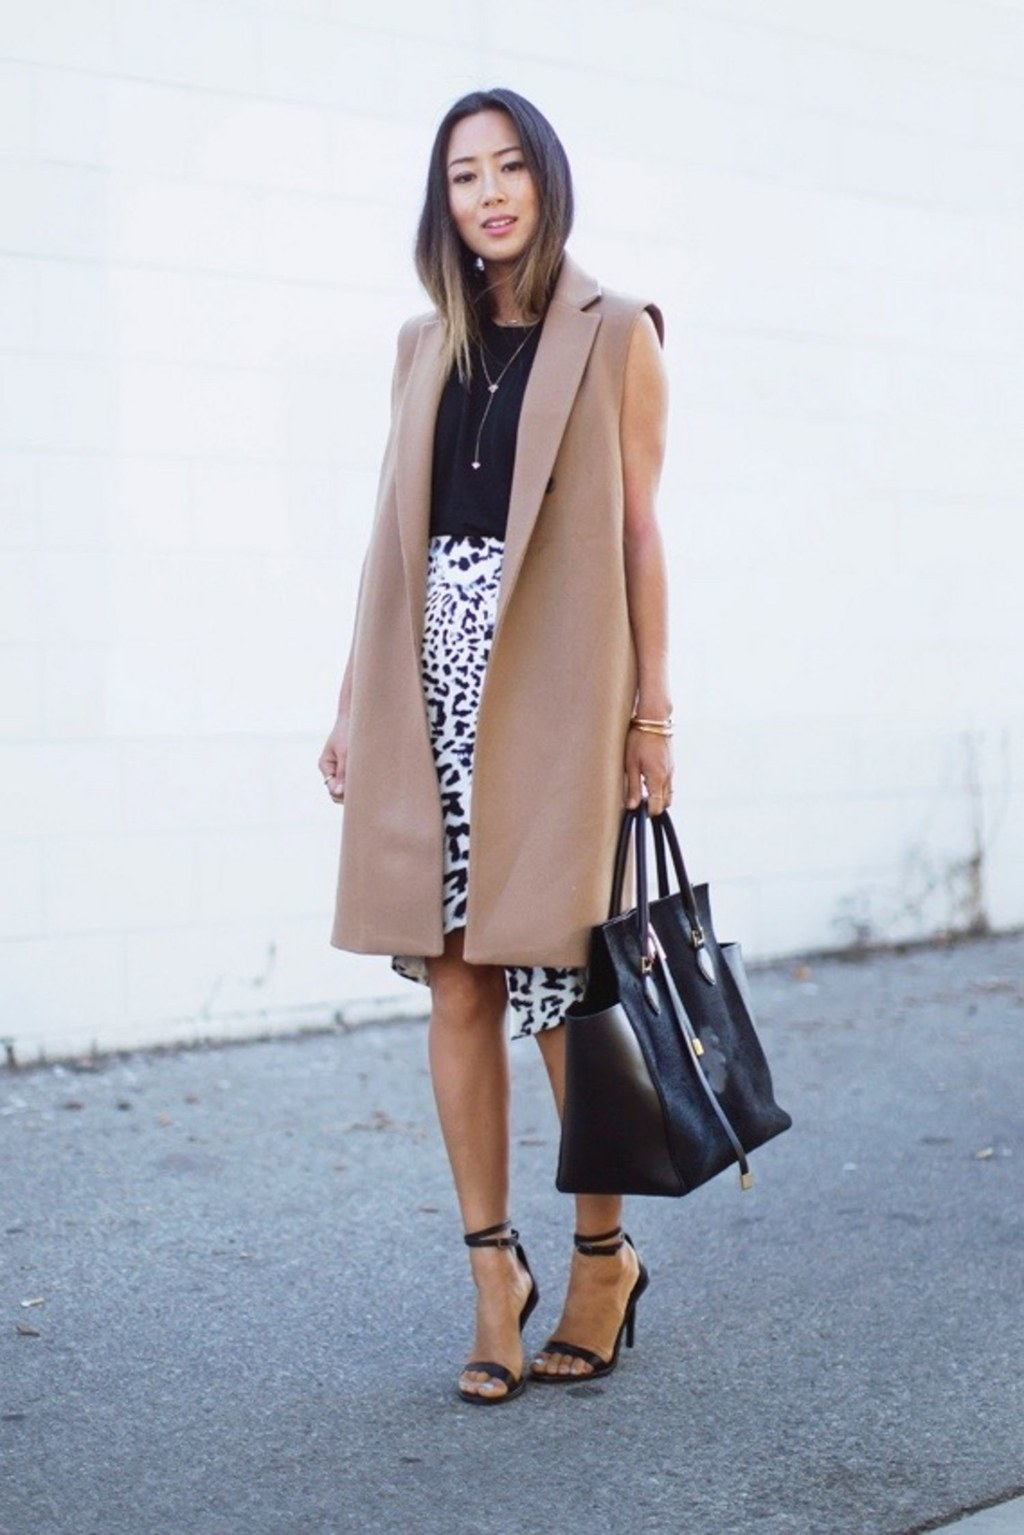 Fall Fashion Trends Tips For Women Fashion Dress In The Present